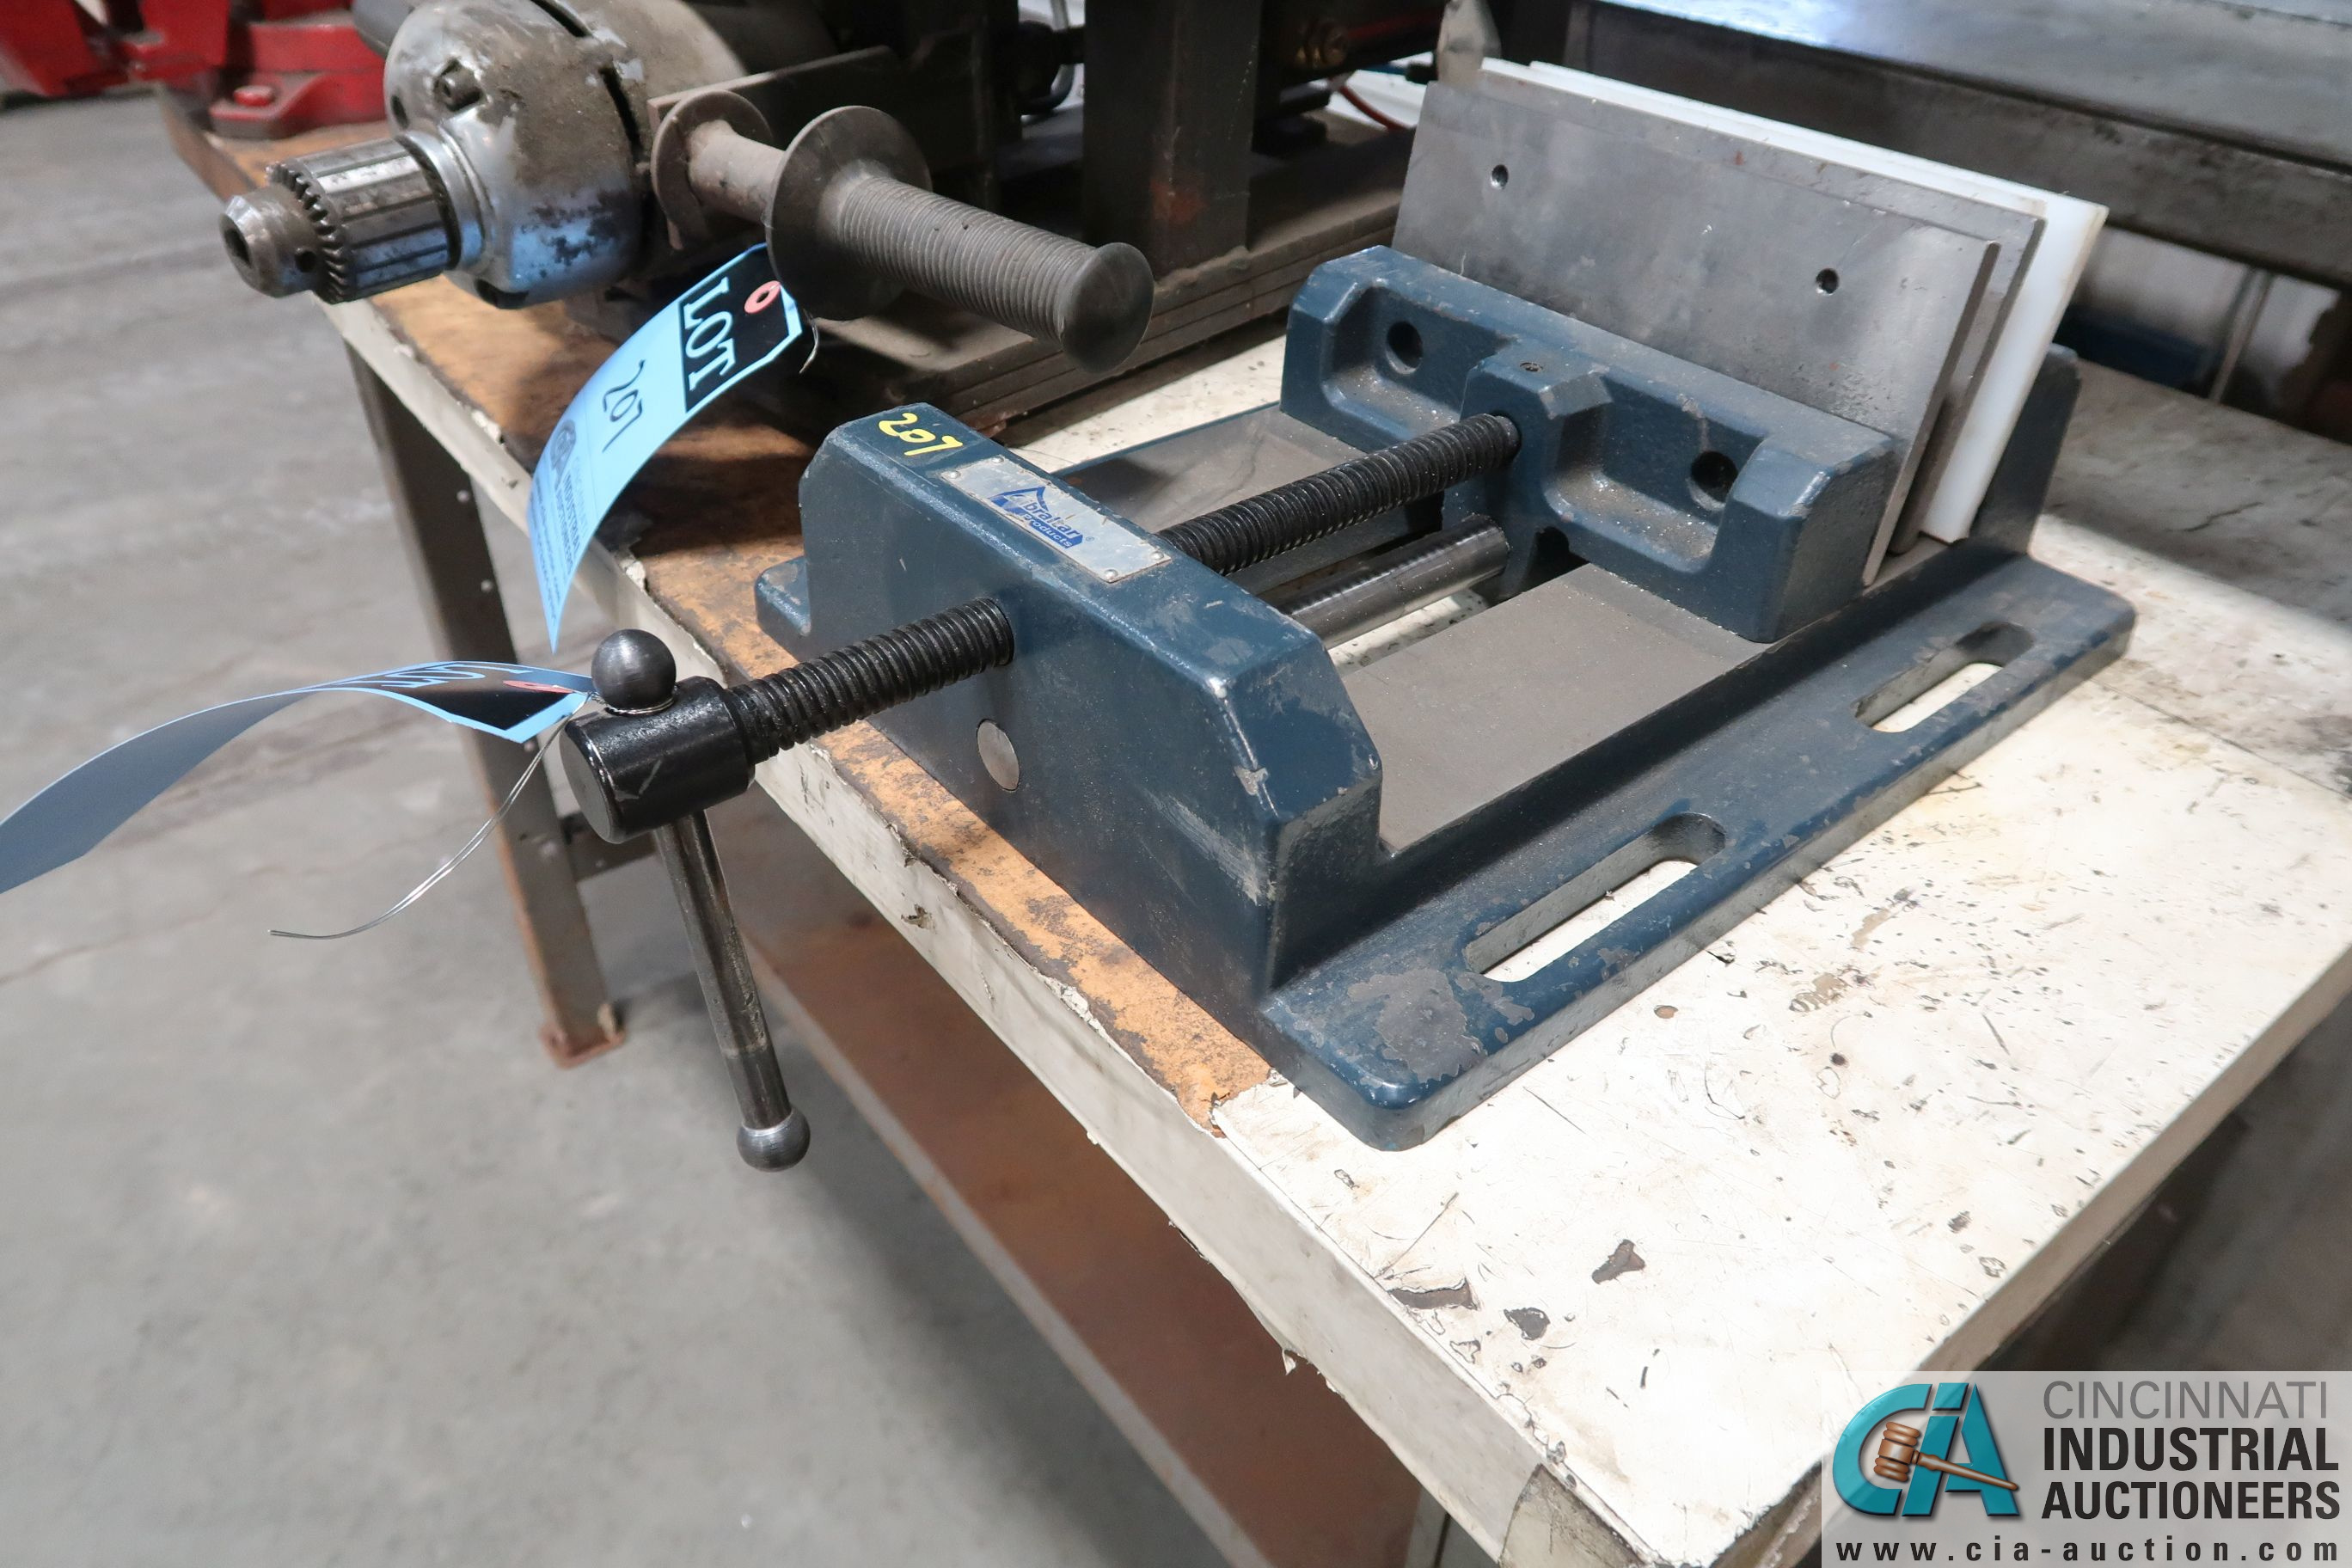 """(LOT) 1/2"""" SPECIALITY DRILL AND 8"""" GIBRATOR DRILL VISE - Image 3 of 3"""